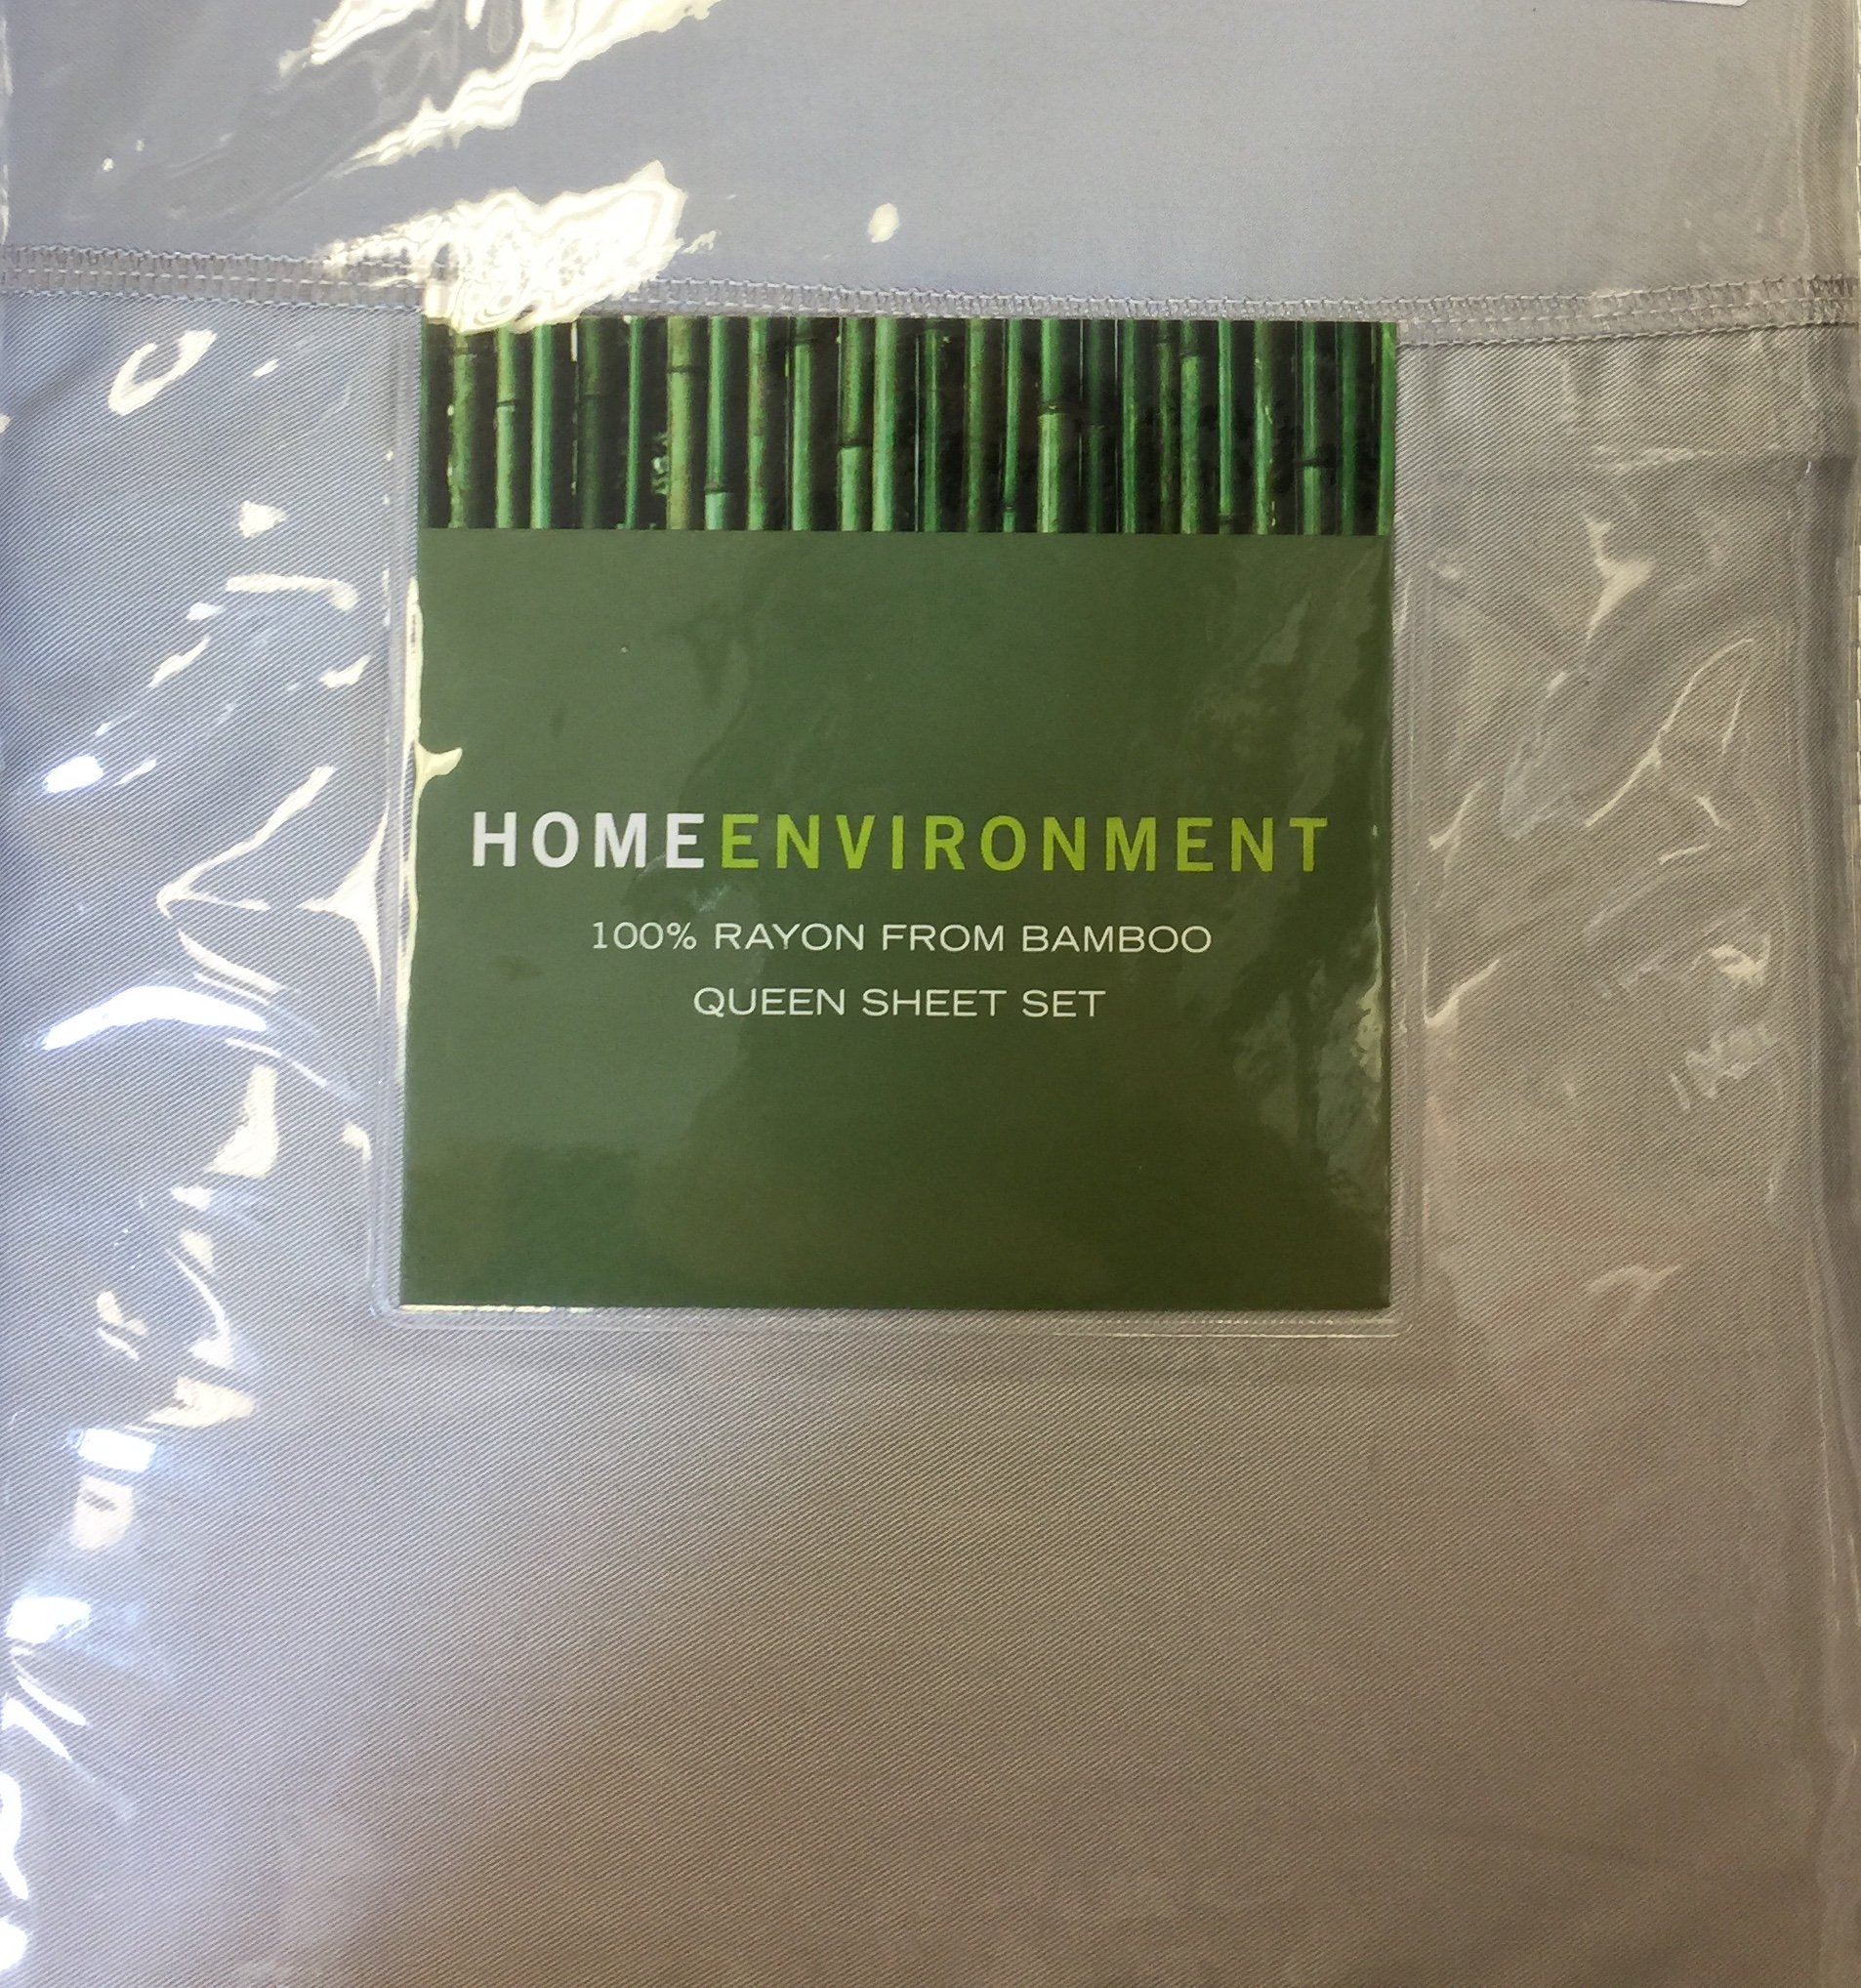 Home Environment Queen Sheet Set, Grey, Rayon from Bamboo, Antibacterial … by Home Environment